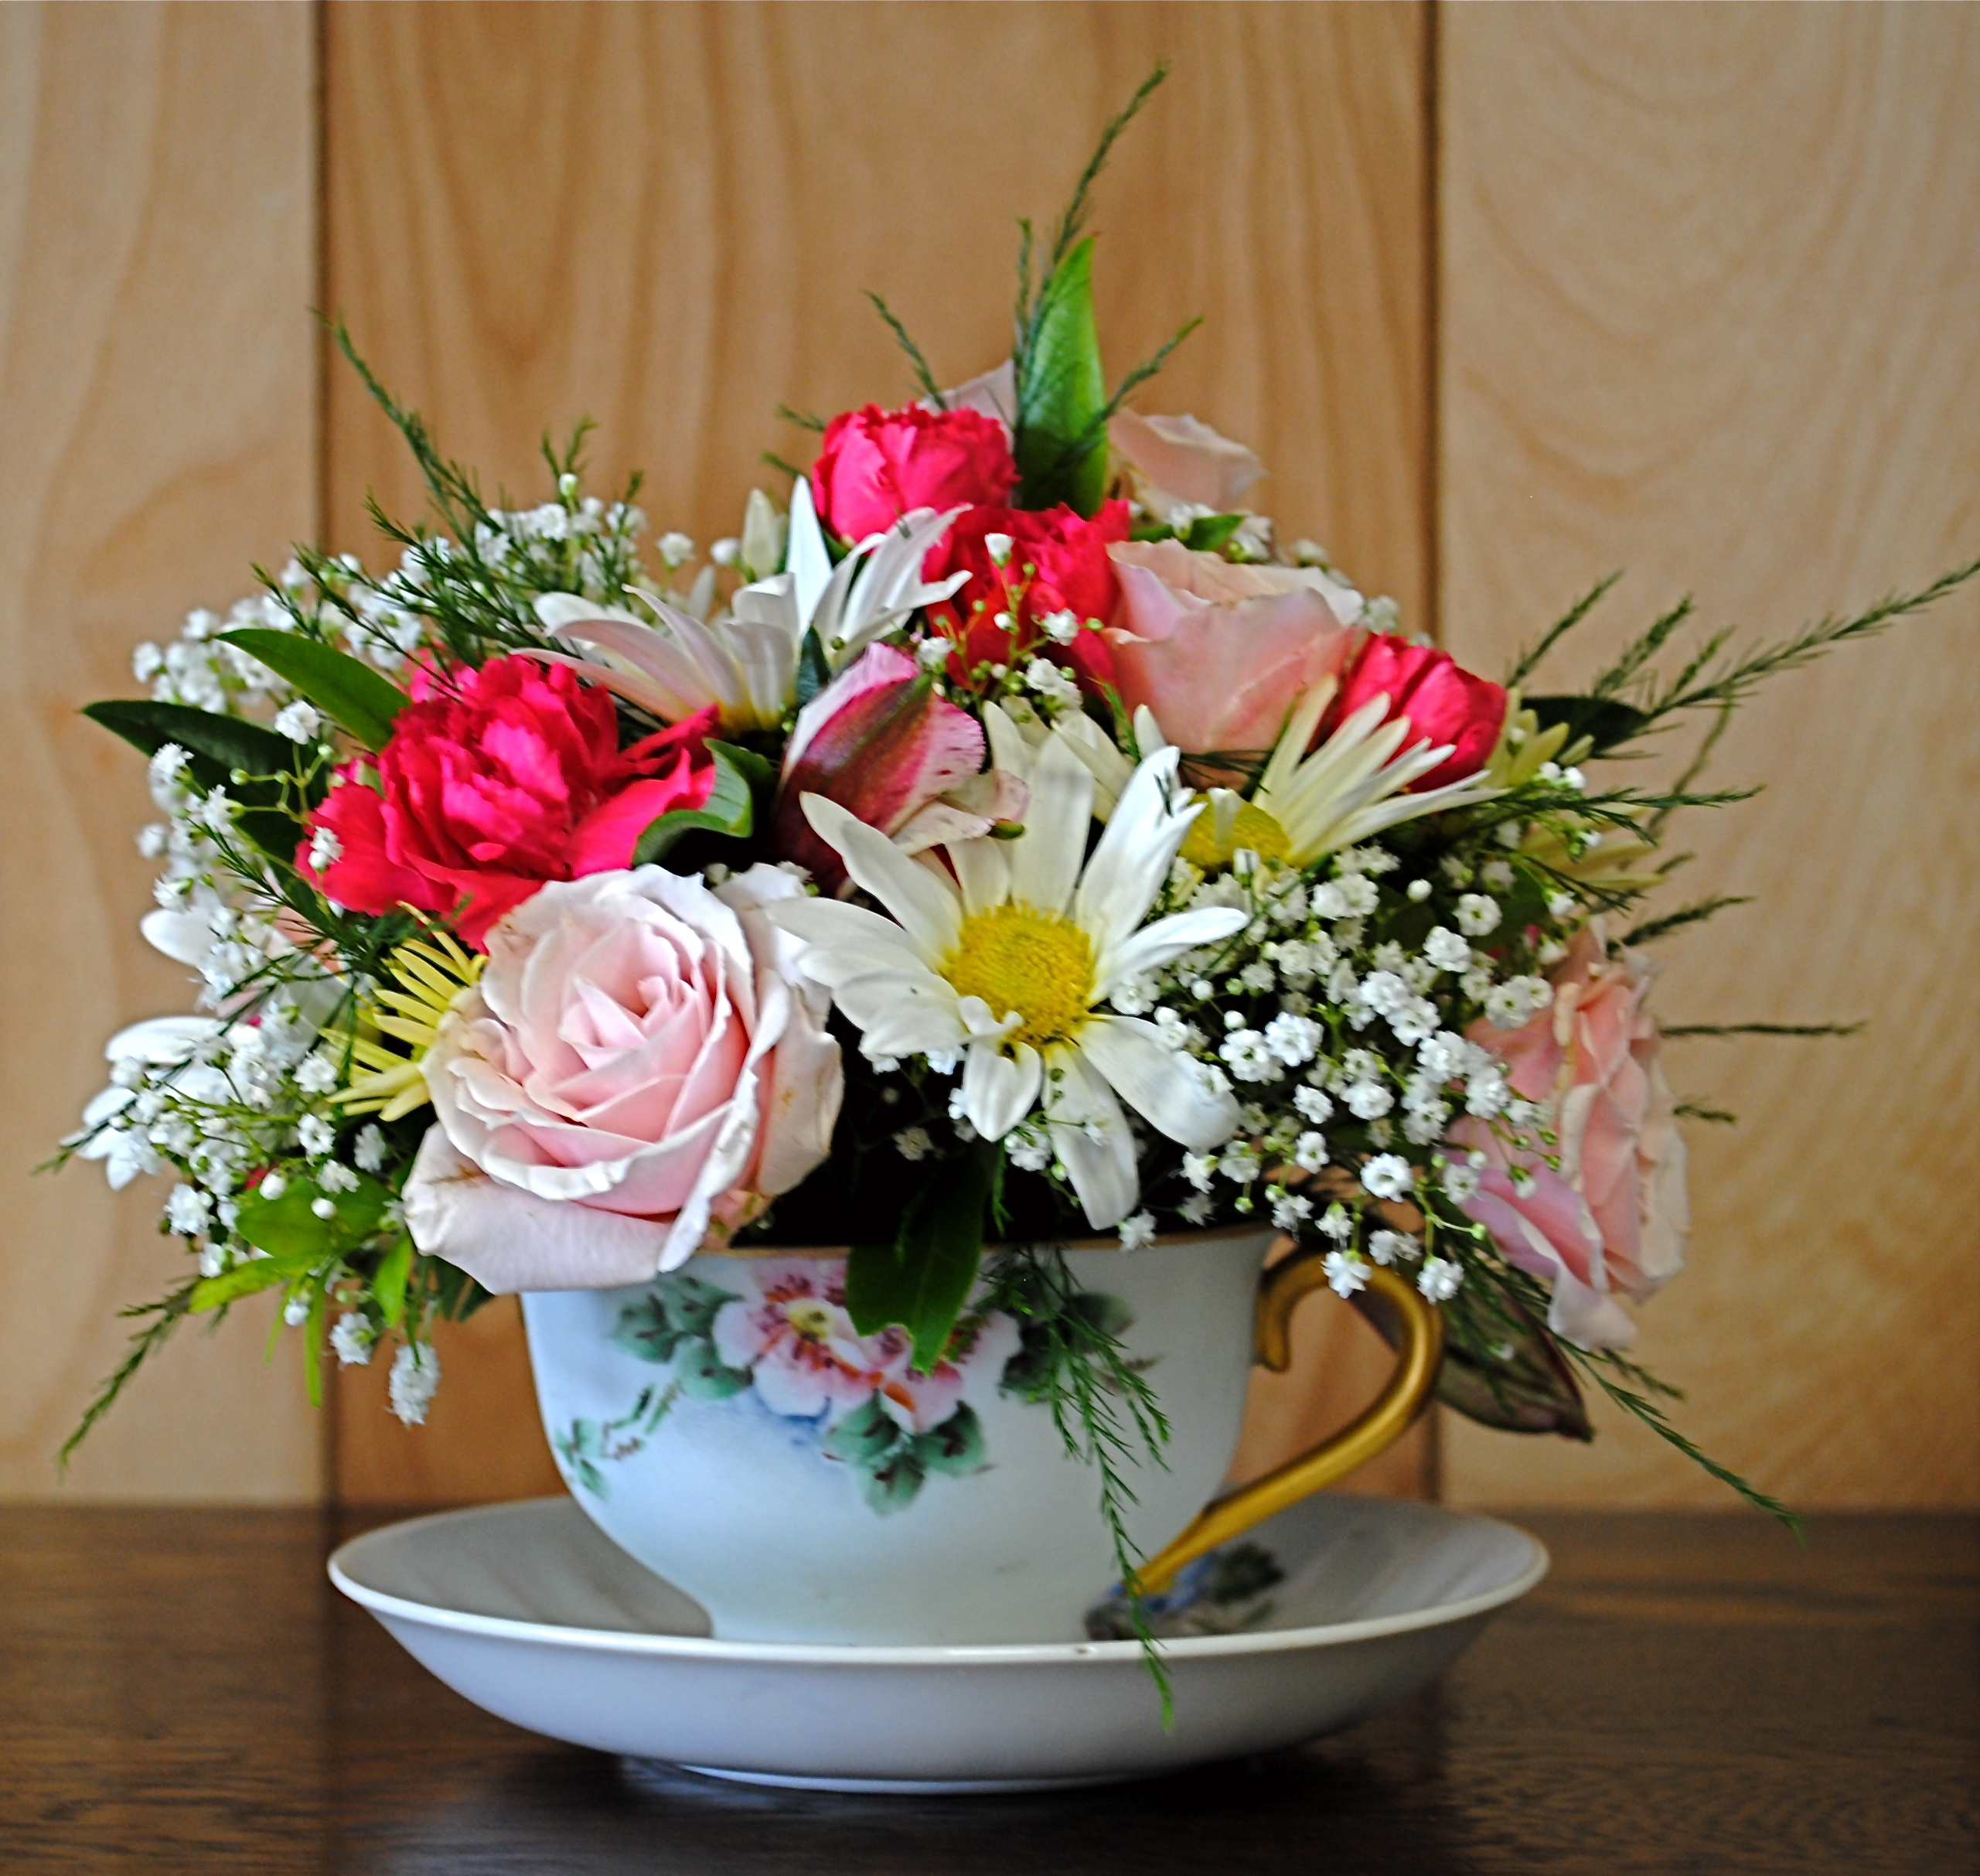 Teacup Arrangements Flowers For That Special Lady Anytime Of Year